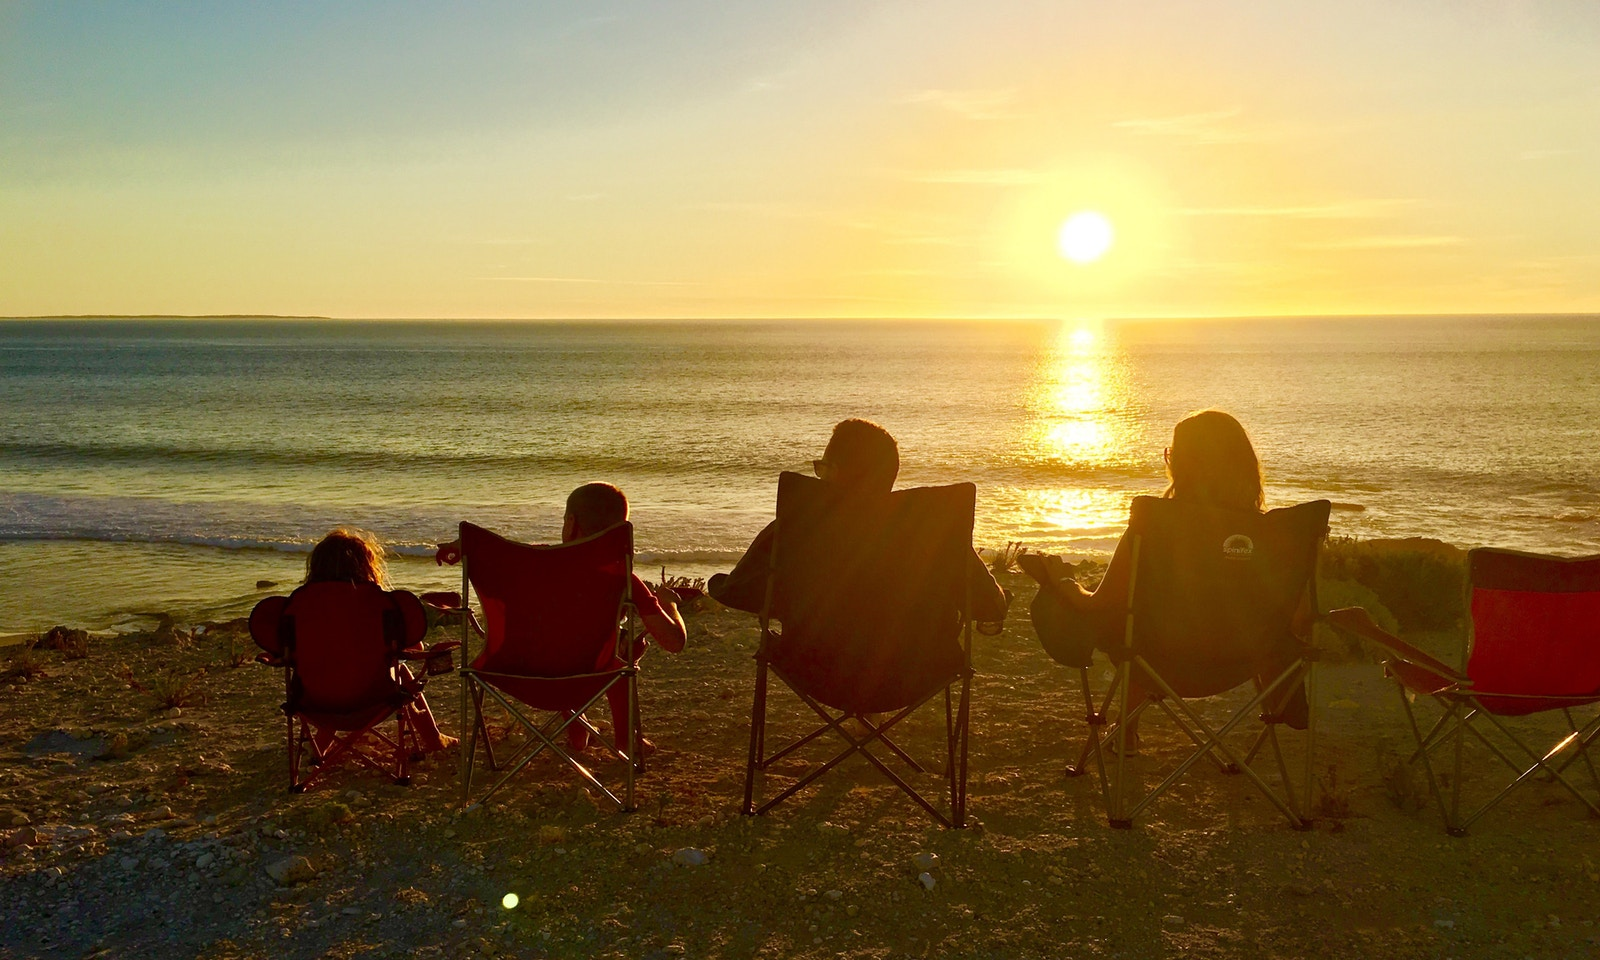 Why the worst day camping is better than the best day in the office